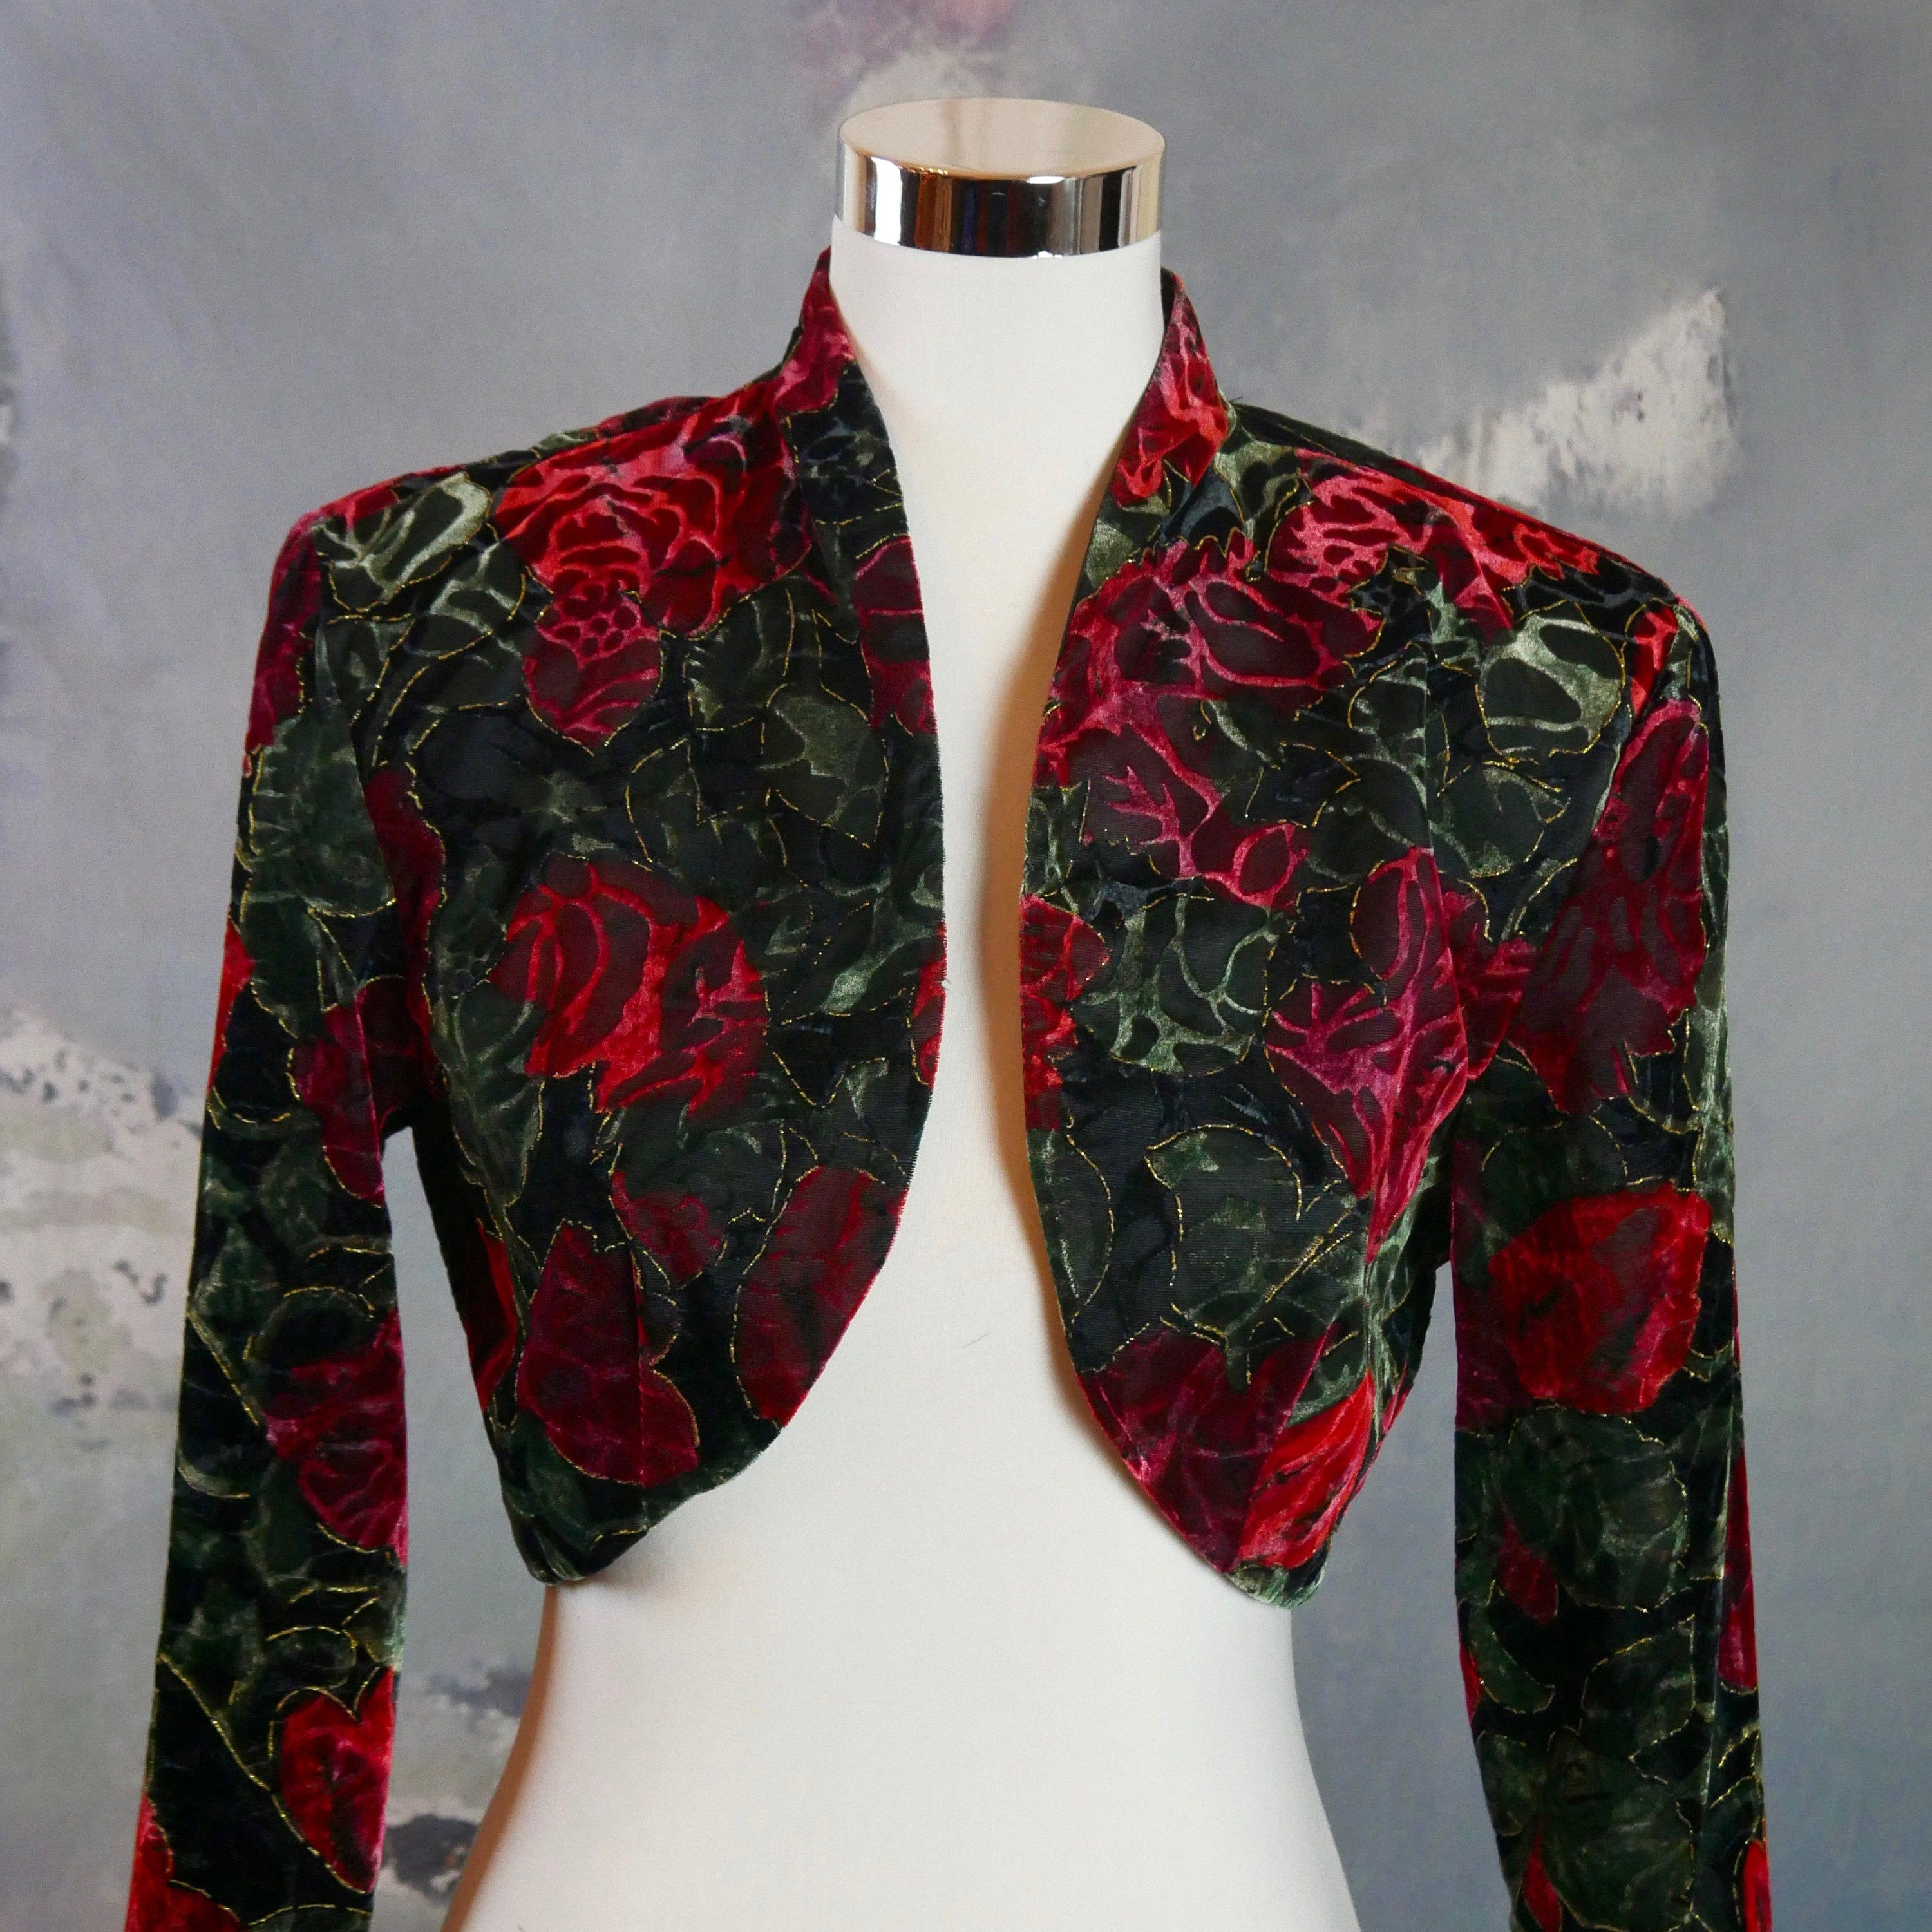 Floral Bolero 1980s American Vintage Black Red And Olive Green Cropped Blazer Size 8 Us 12 Uk In 2020 Cropped Blazer American Vintage Vintage Clothes Women